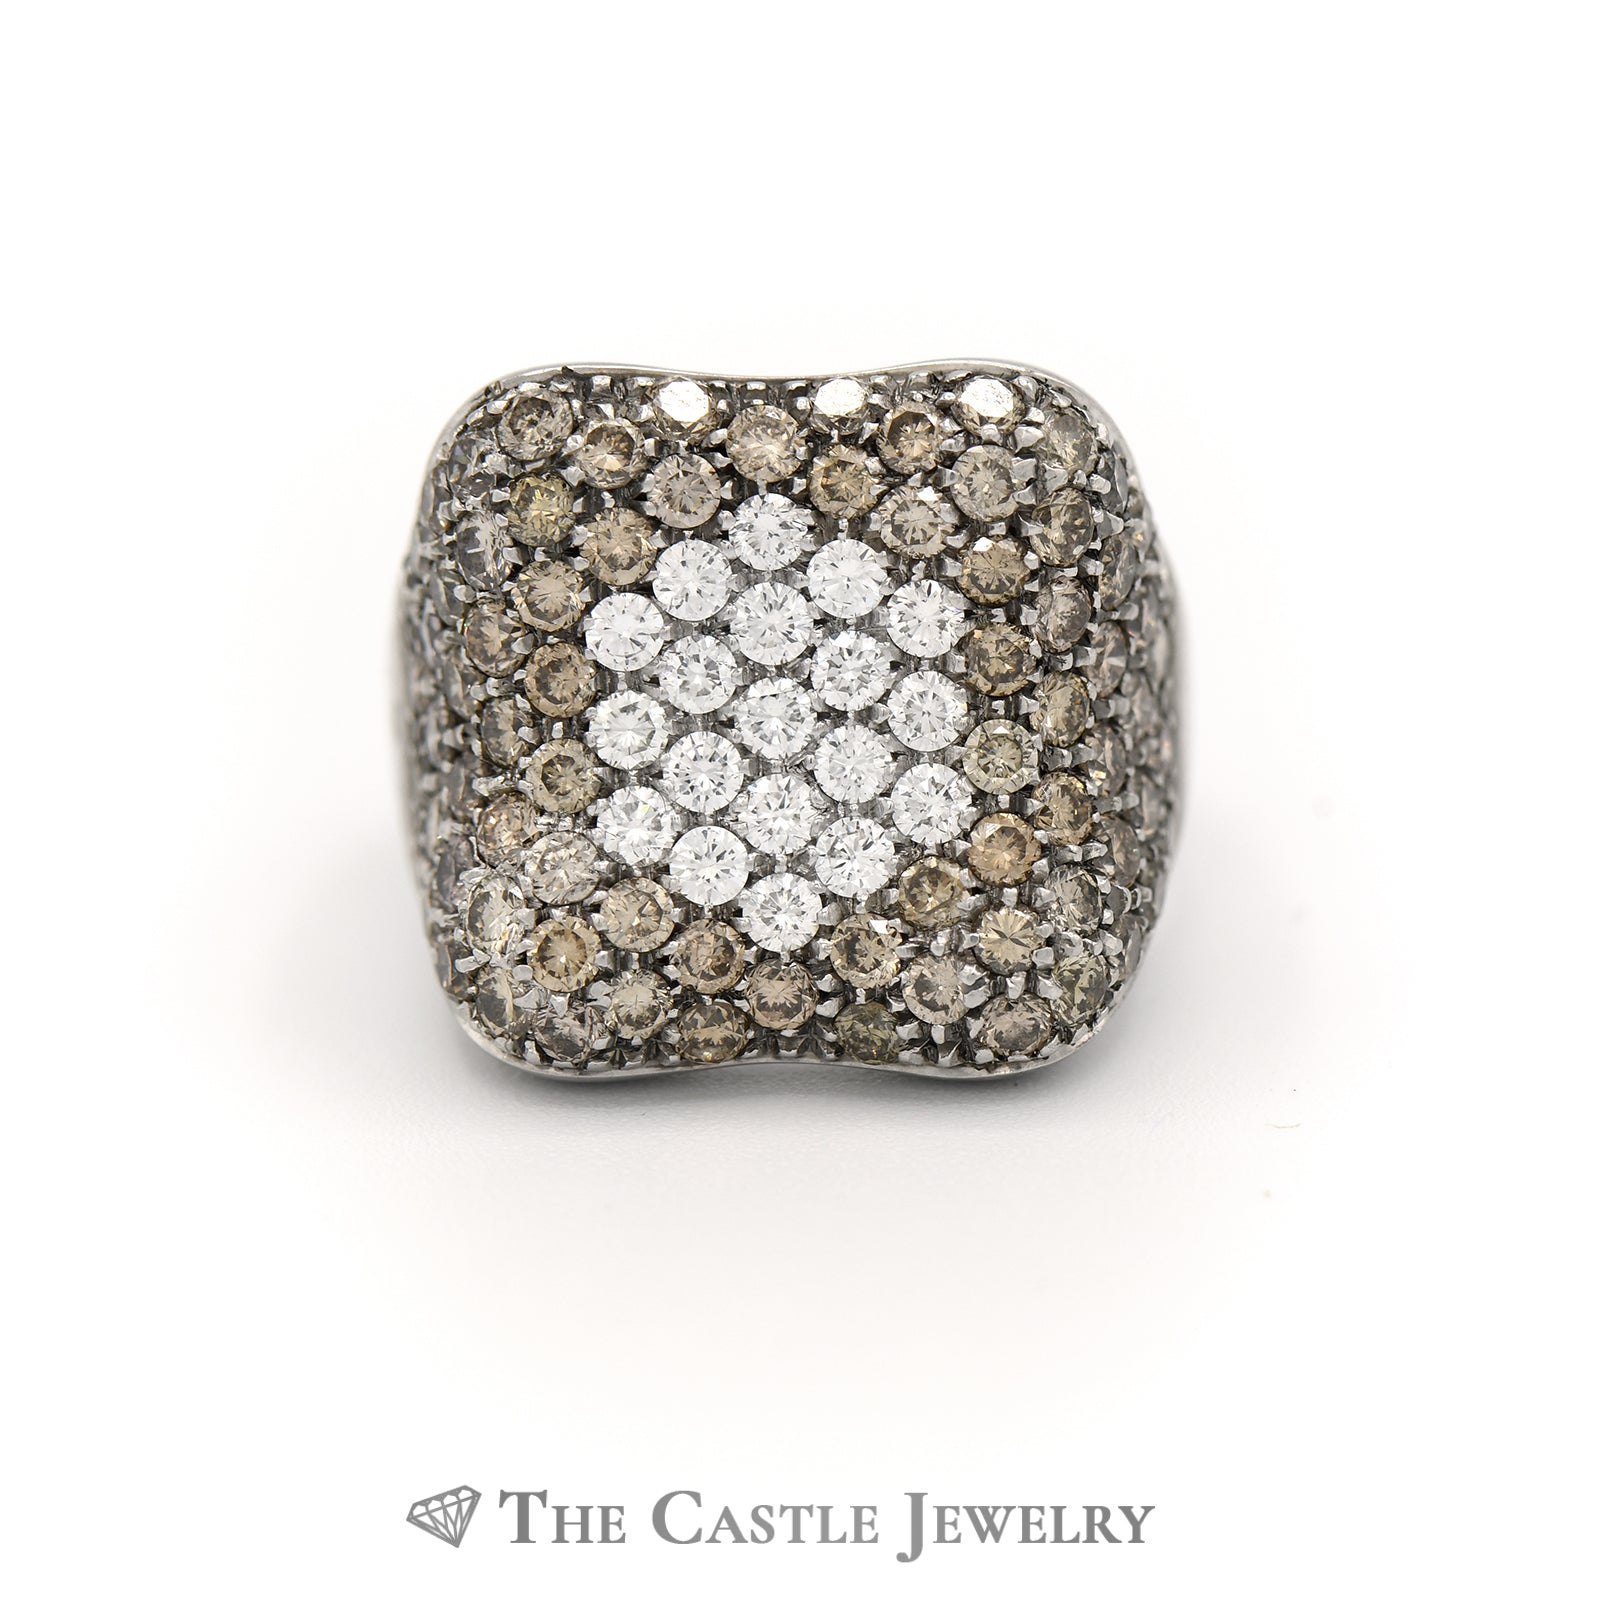 Concave Design Cluster Ring 3.50cttw Pave Set Round White & Champagne Diamonds